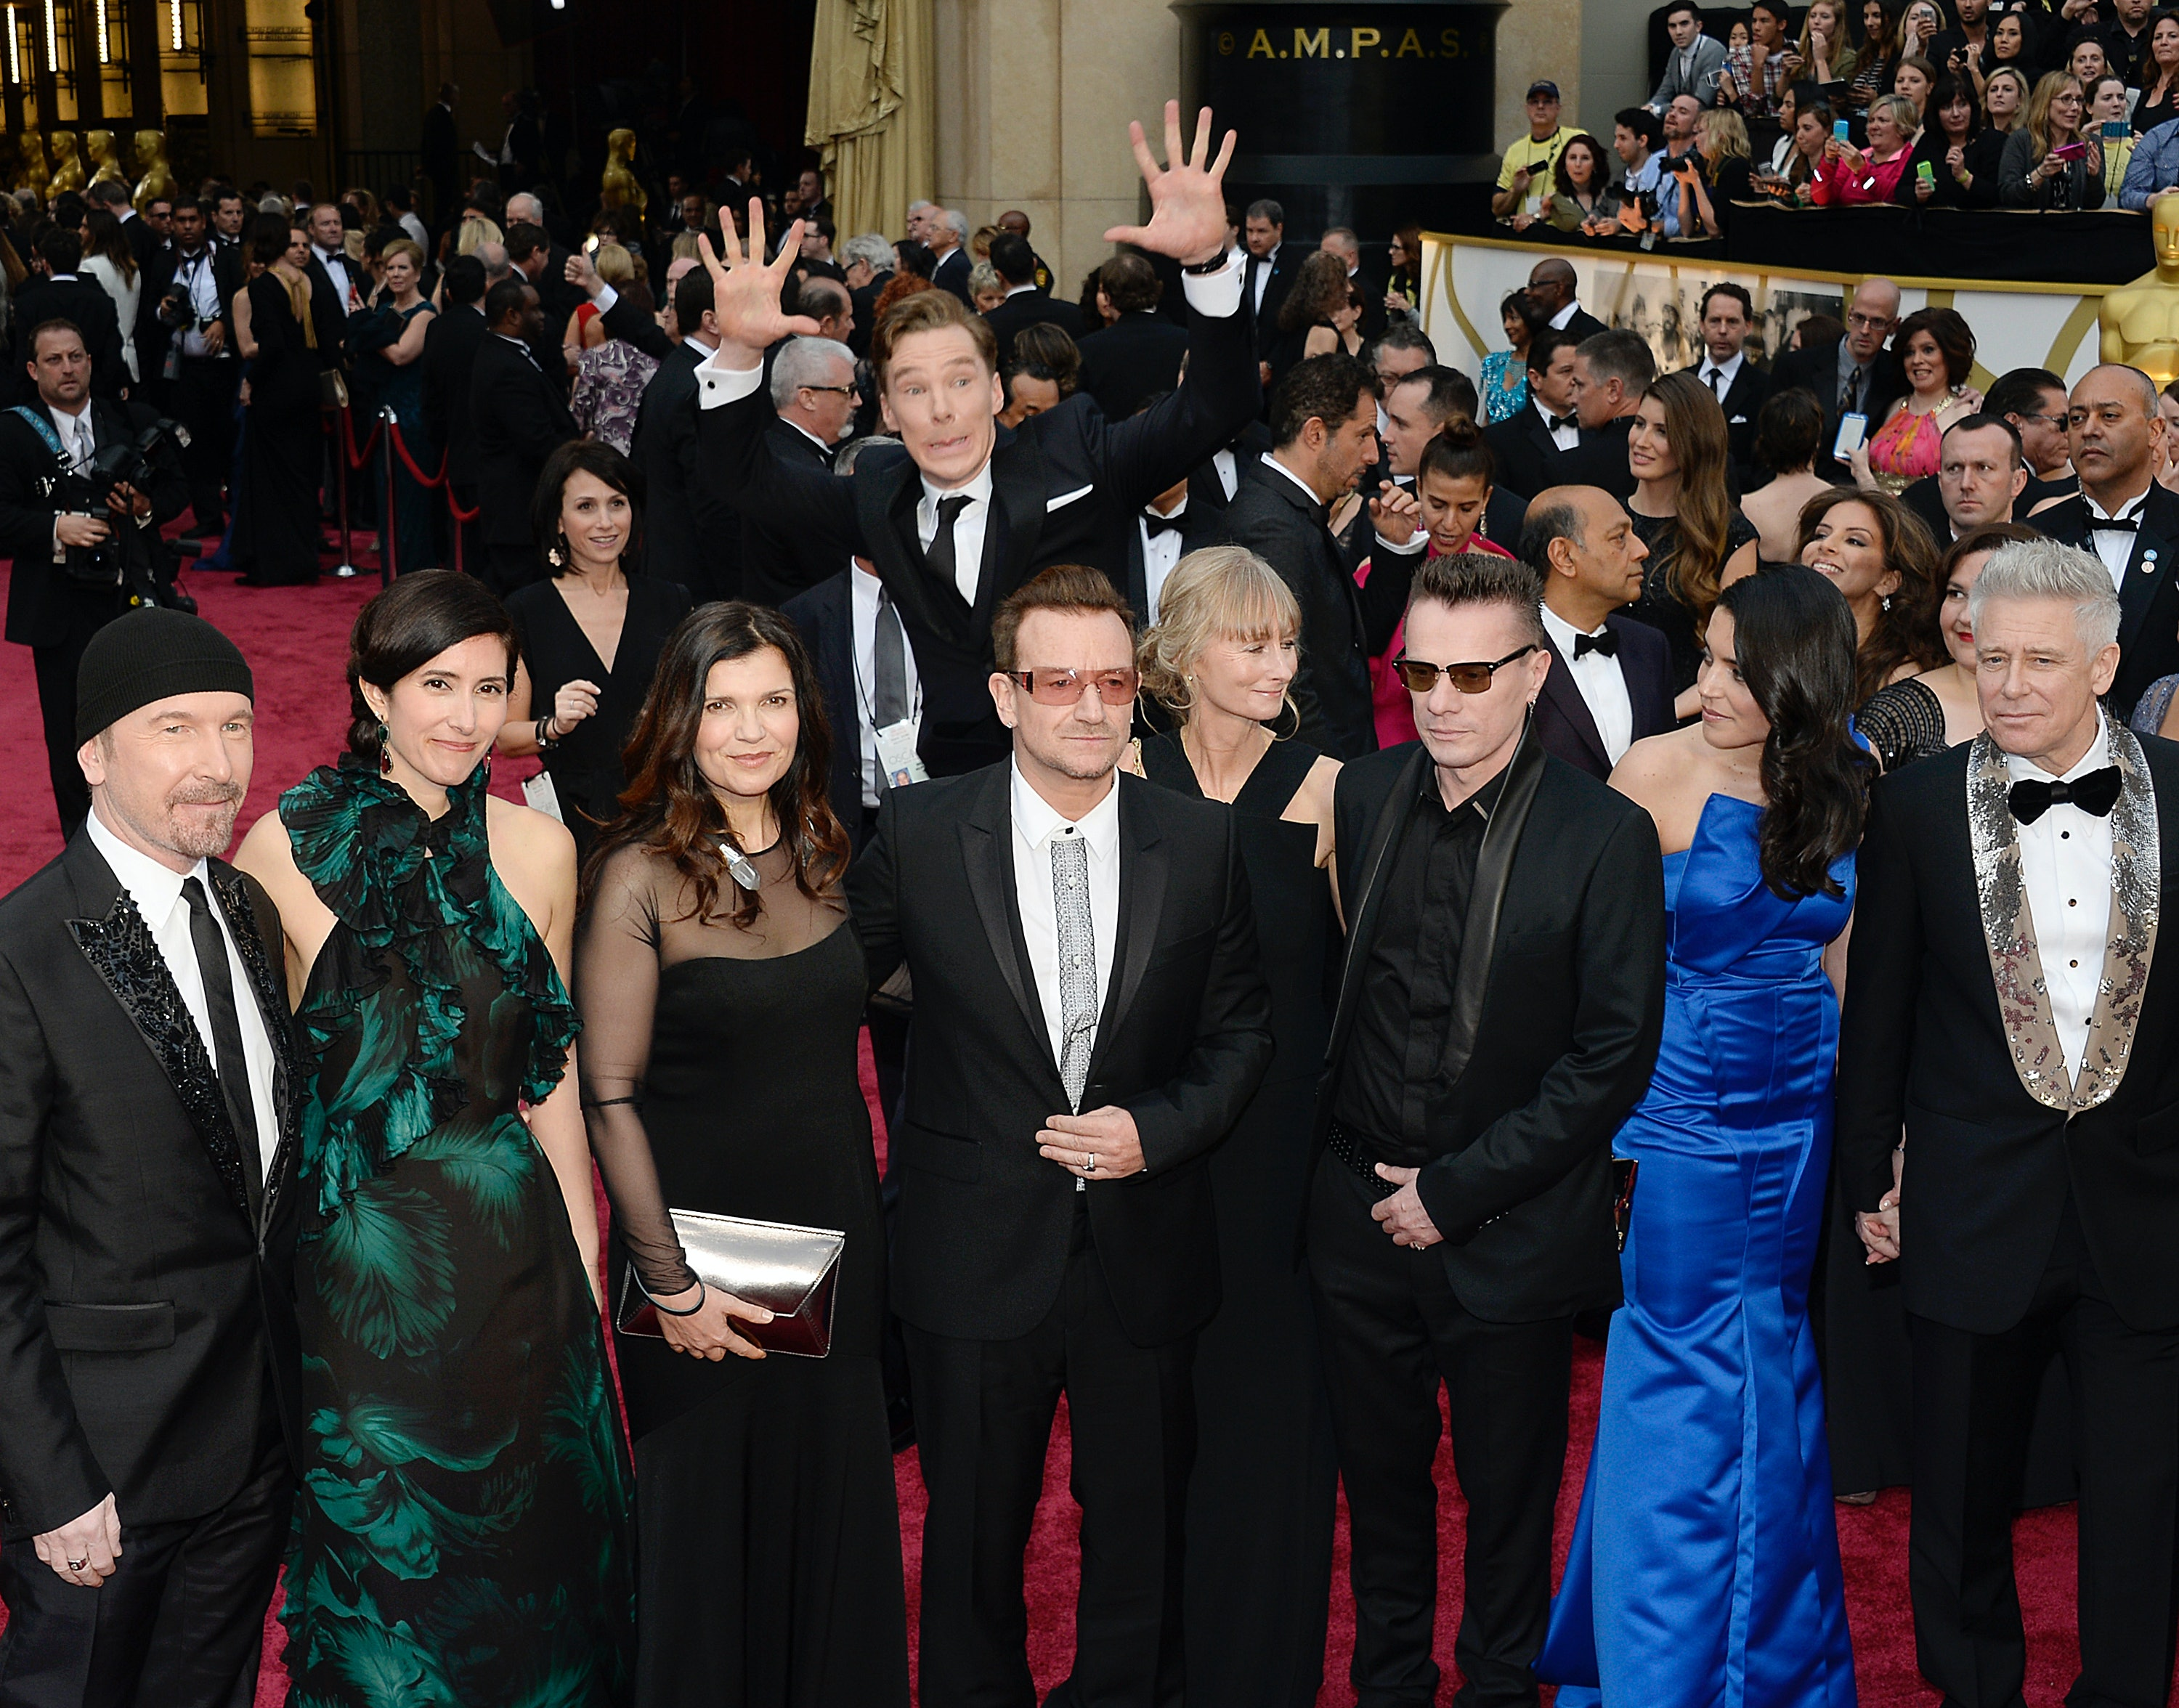 Mr. Movie review: Are Oscars really that relevant anymore?